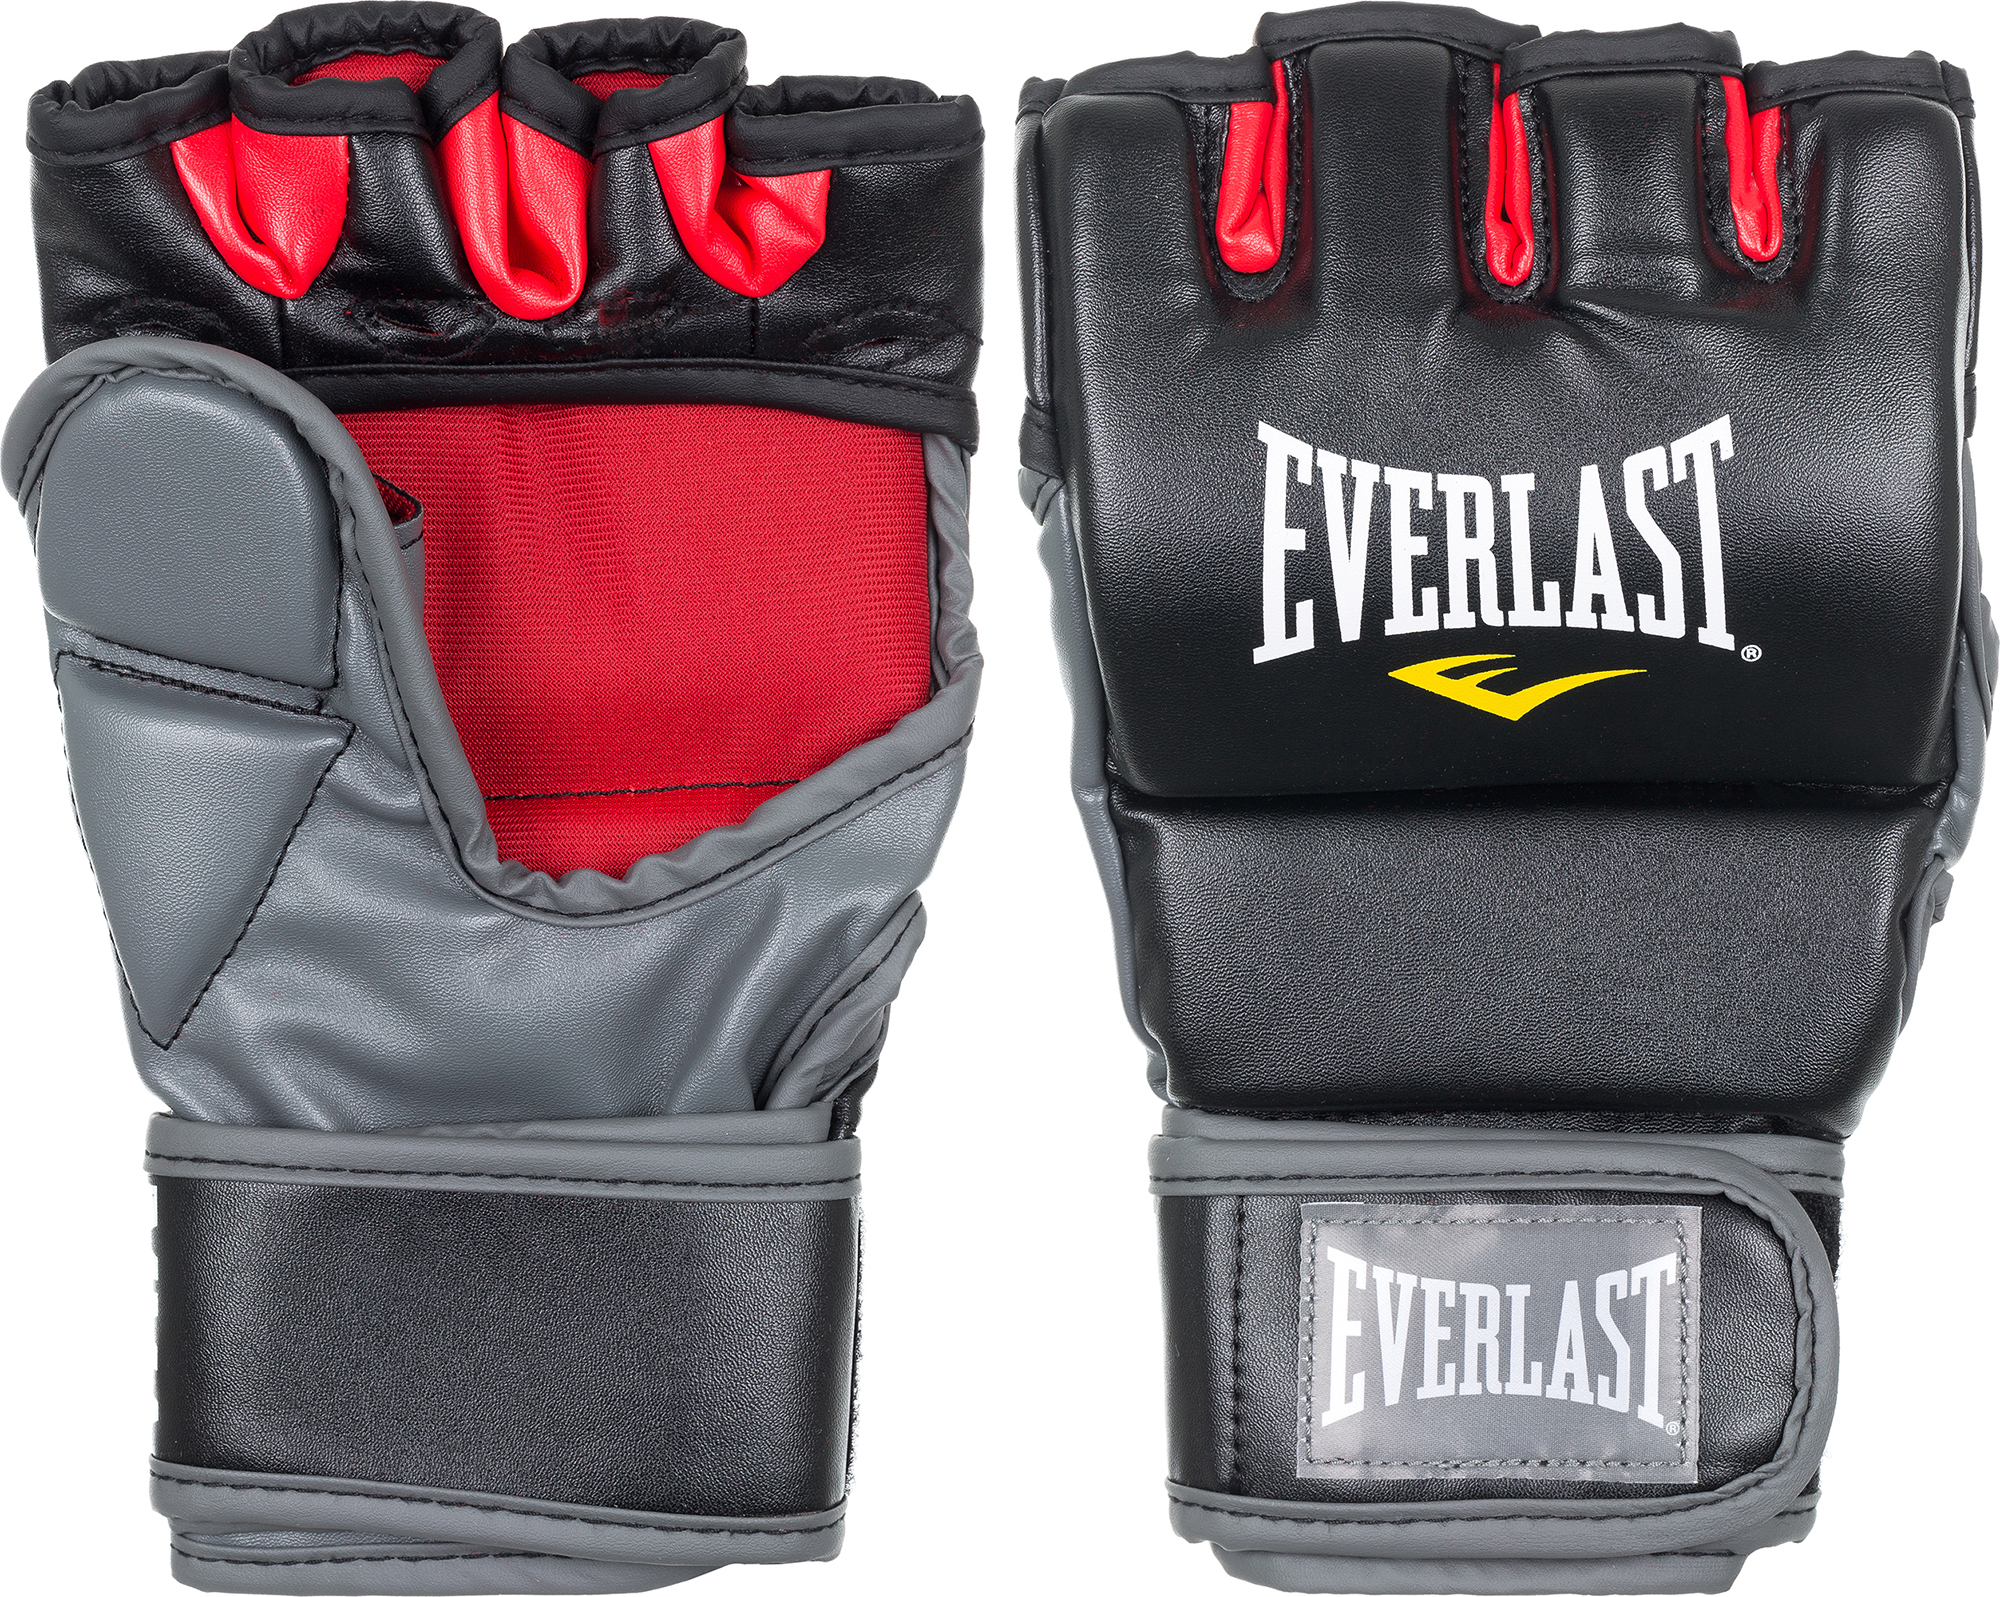 Everlast Шингарты Everlast Grappling, размер L-XL цена